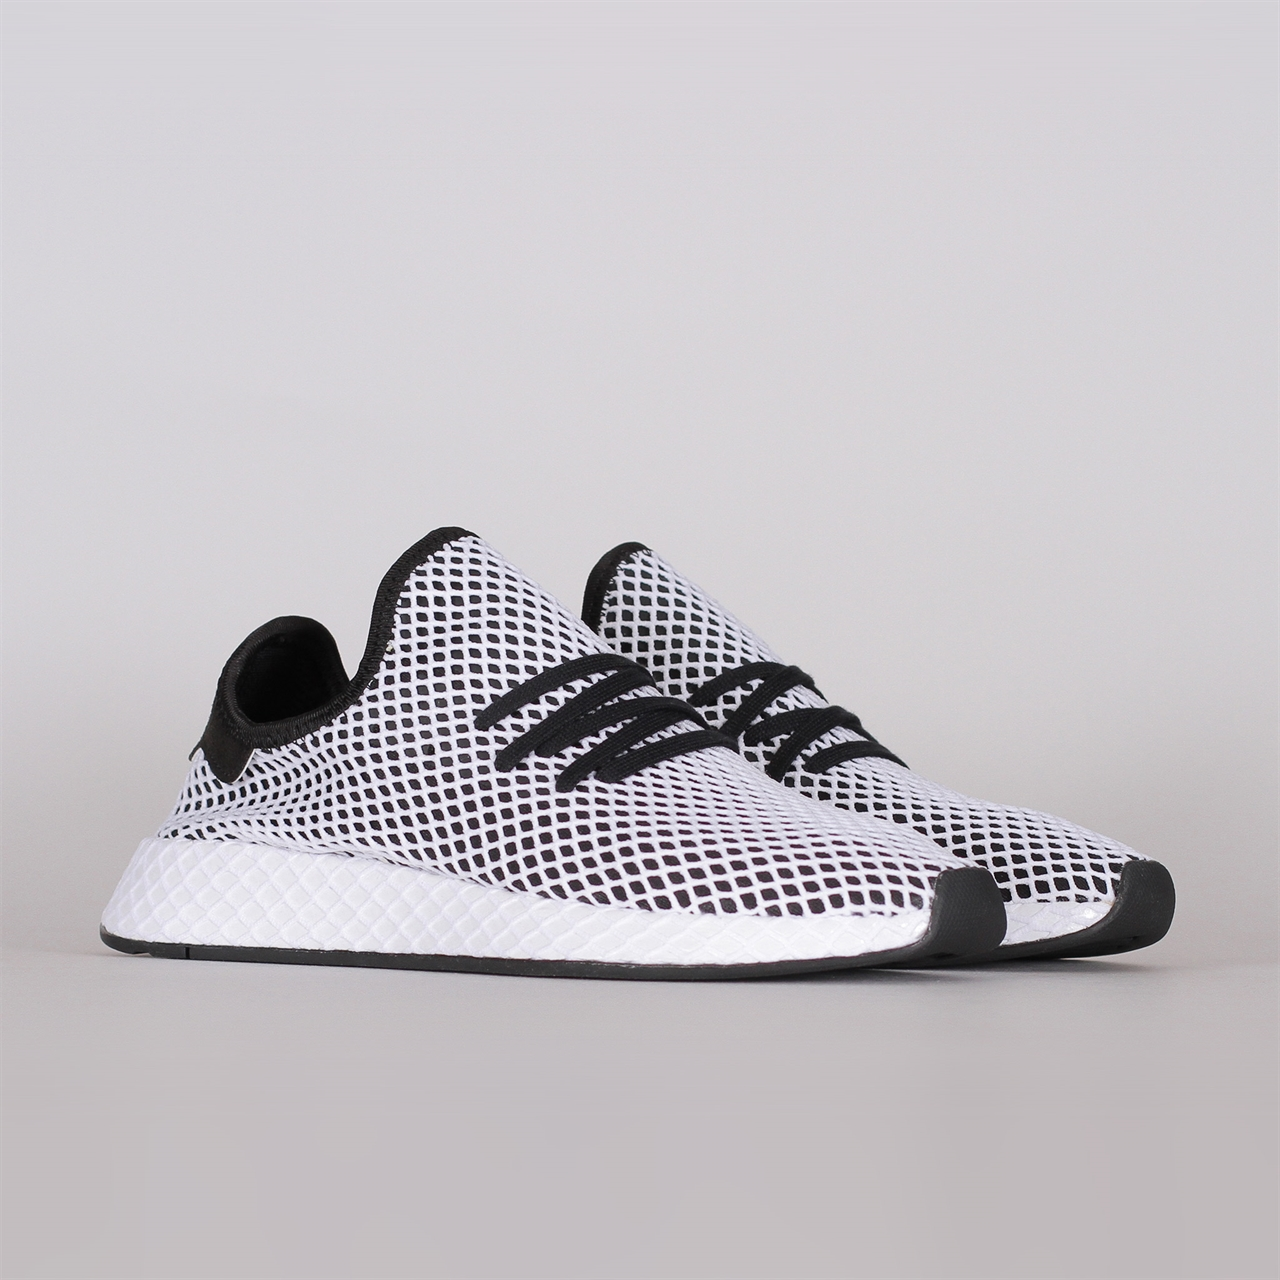 3719798f103f6 Shelta - Adidas Originals Deerupt Runner (CQ2626)